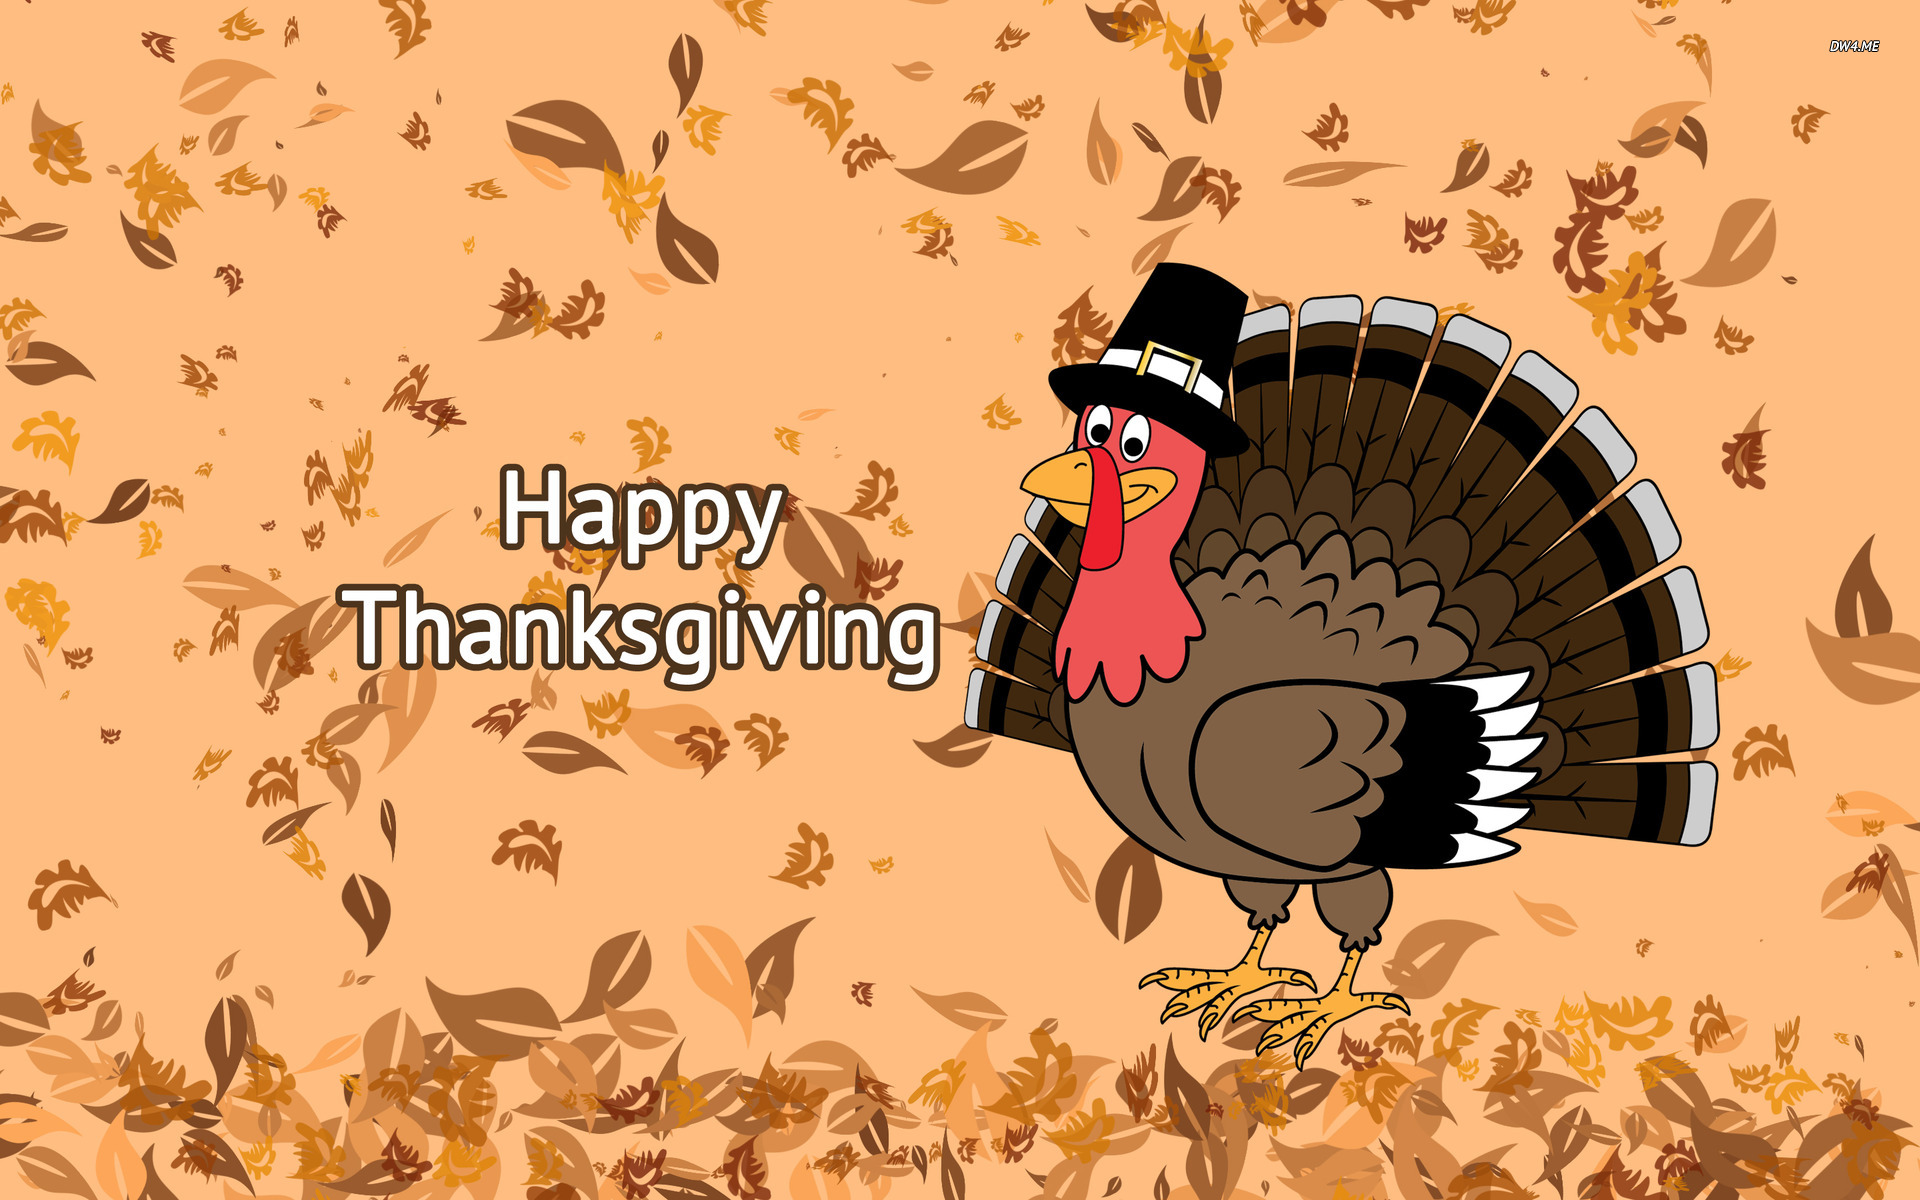 Disney Thanksgiving Wallpaper Background HD